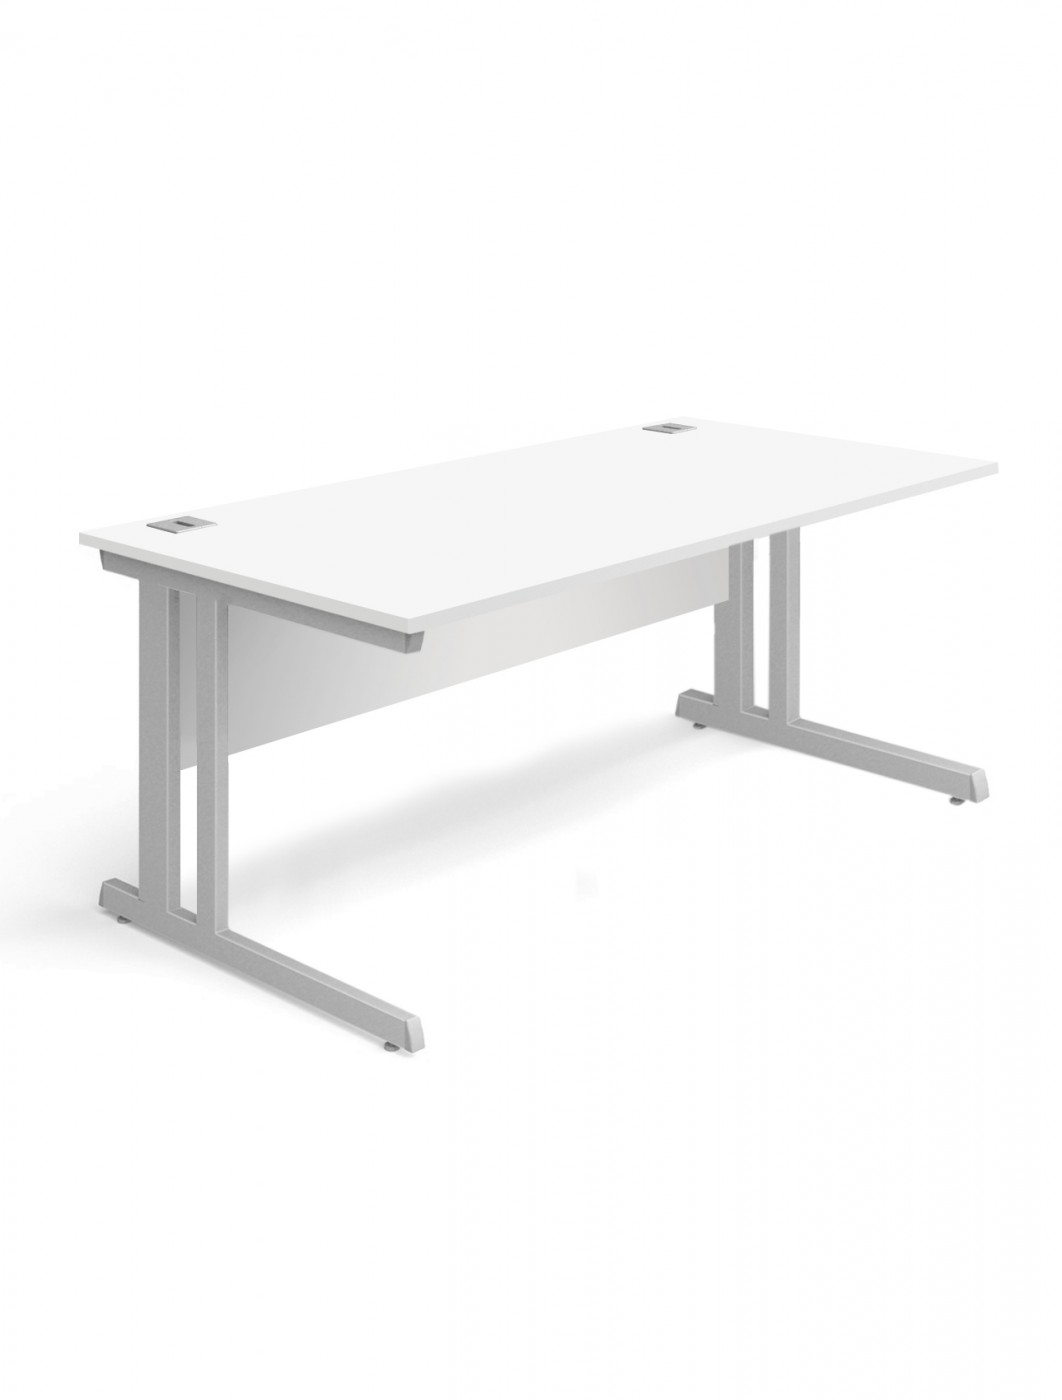 White Office Desk White Office Desk 1400x800mm Aspire Desk Et Sd 1400 Wh